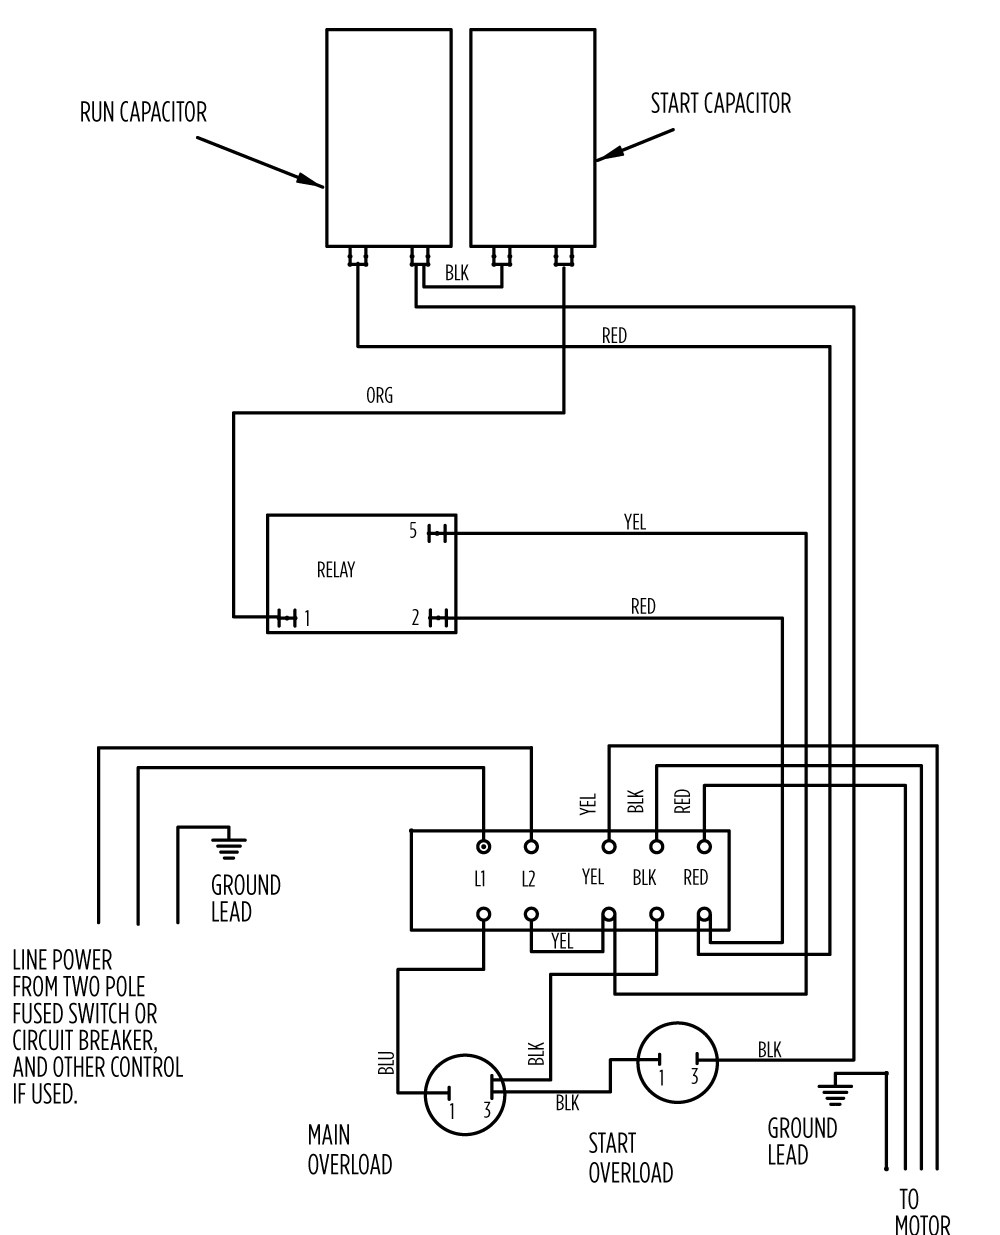 Control Box Wiring Diagram Trusted Diagrams Septic Pump Free Picture Aim Manual Page 55 Single Phase Motors And Controls Motor Well